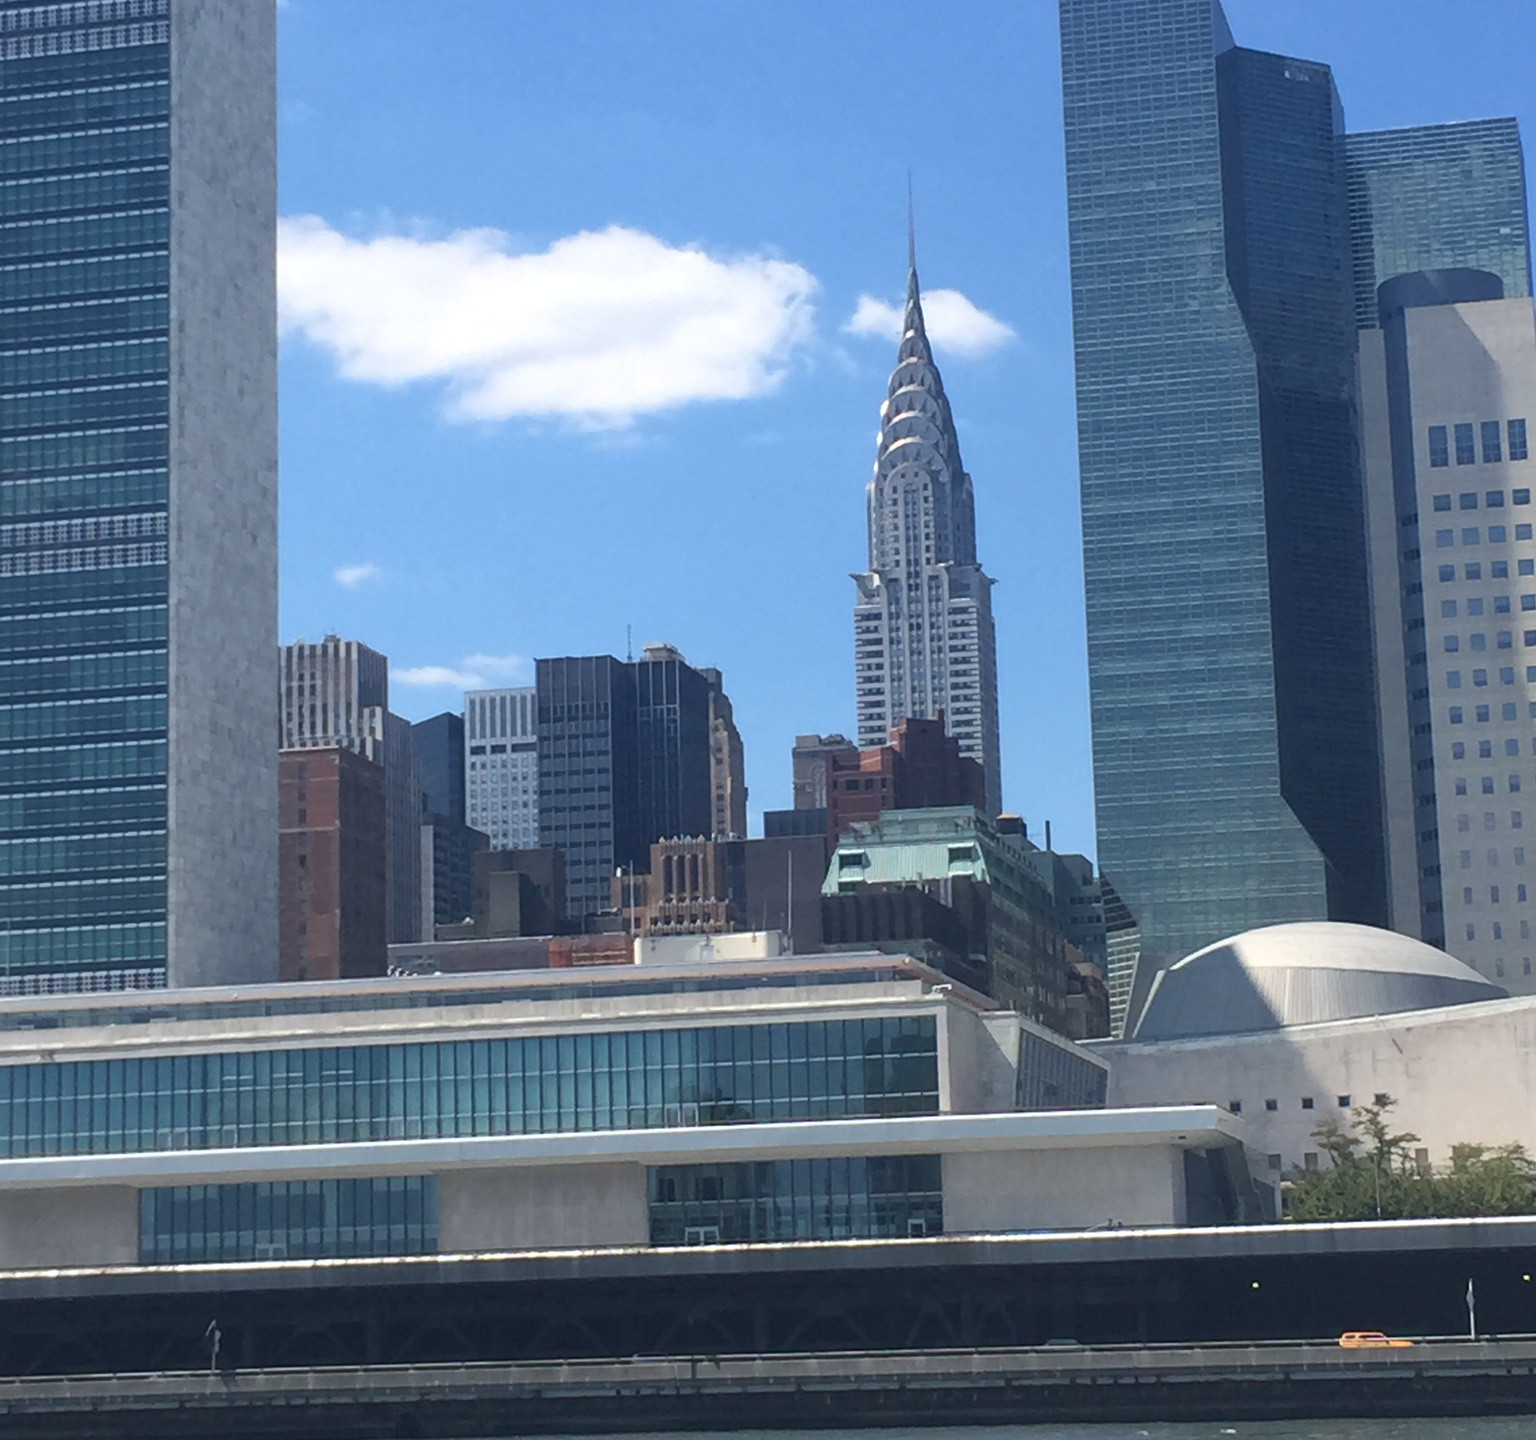 As we travel downtown I noticed the Chrysler Building.